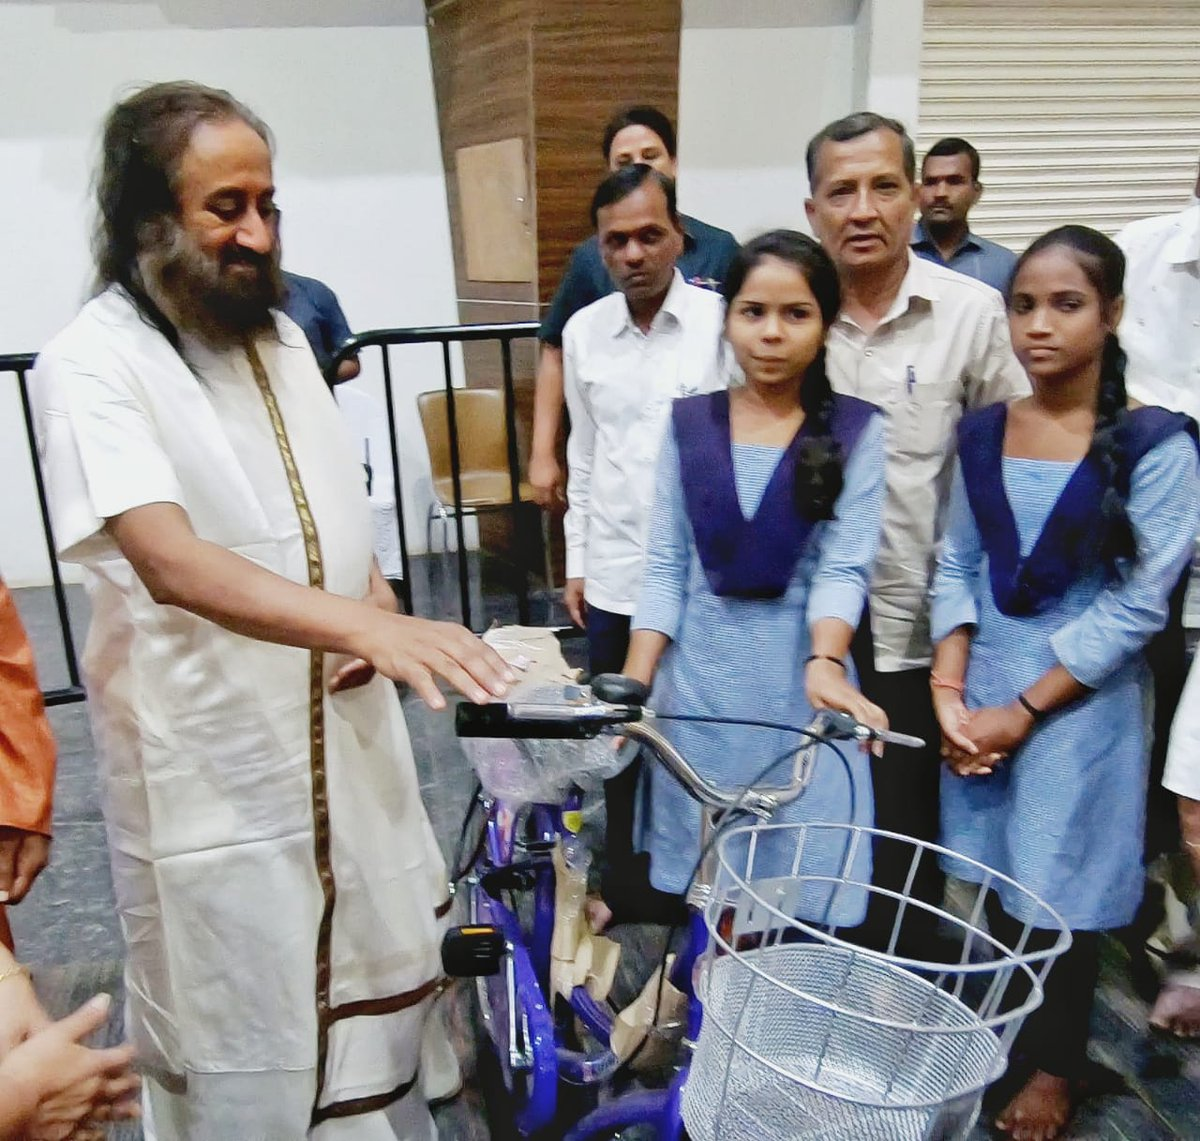 Inaugurated Project Parivartan, an @ArtofLiving initiative in association with gov of Telangana, to distribute 10,000 cycles to gov school students in underprivileged areas. The drop out rate after 5th grade is >68%. This initiative will encourage students to continue studying.